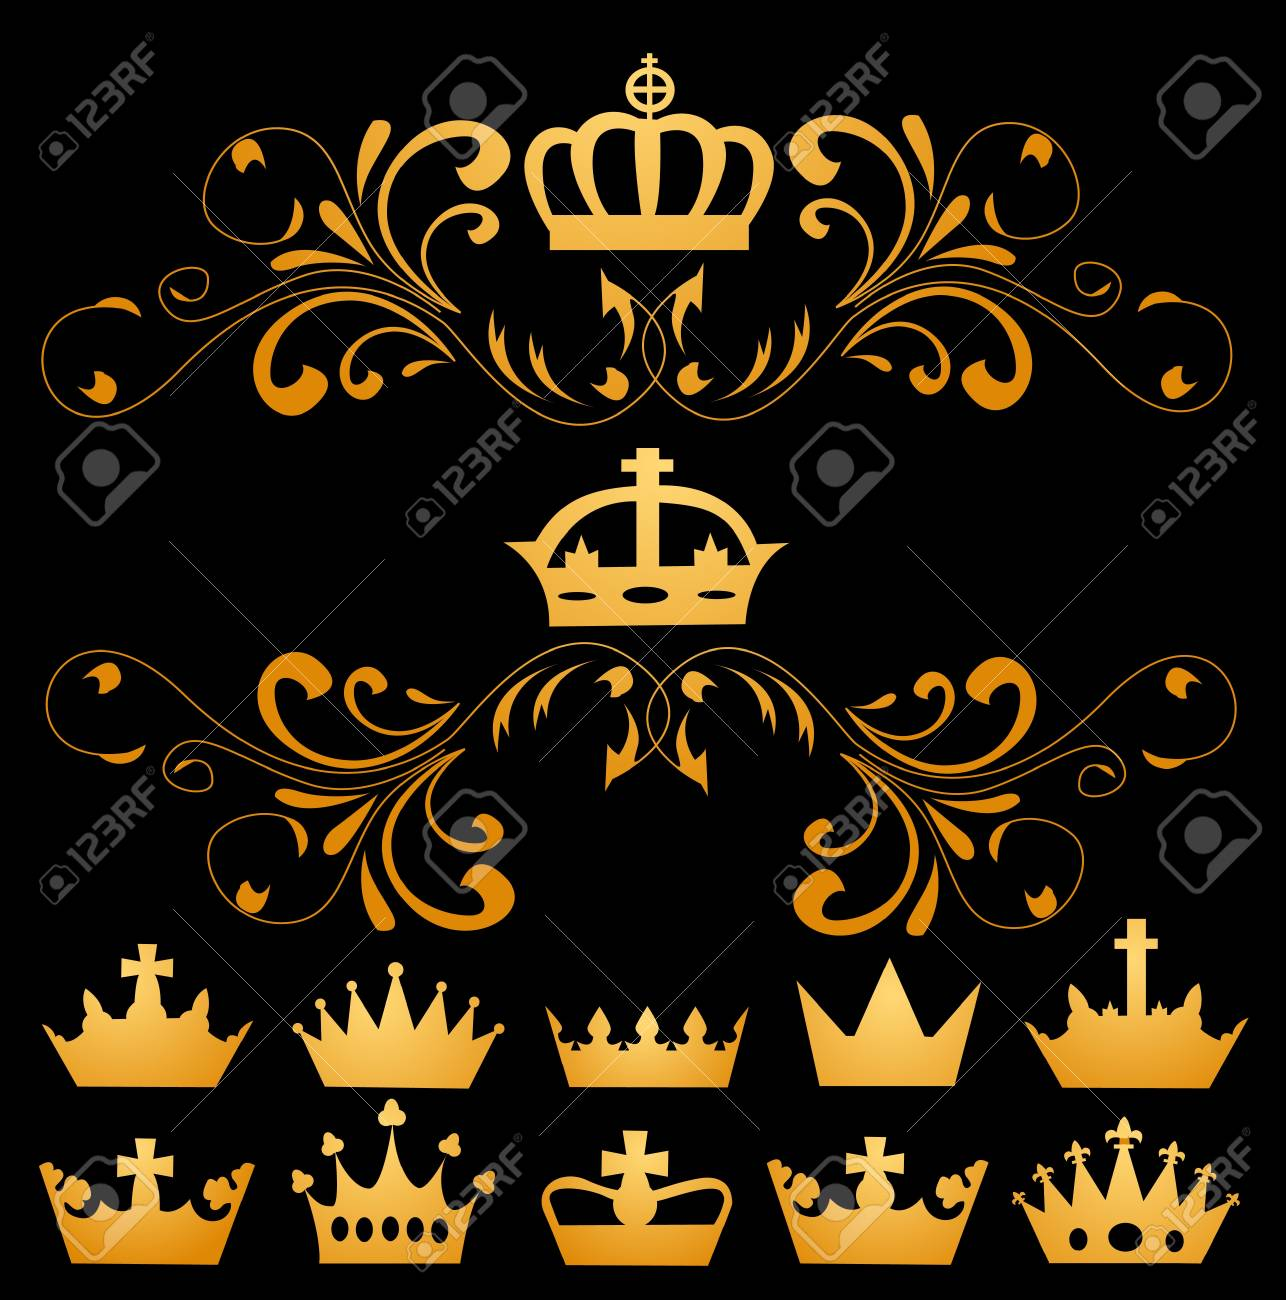 illustration of different crowns Stock Vector - 19351378